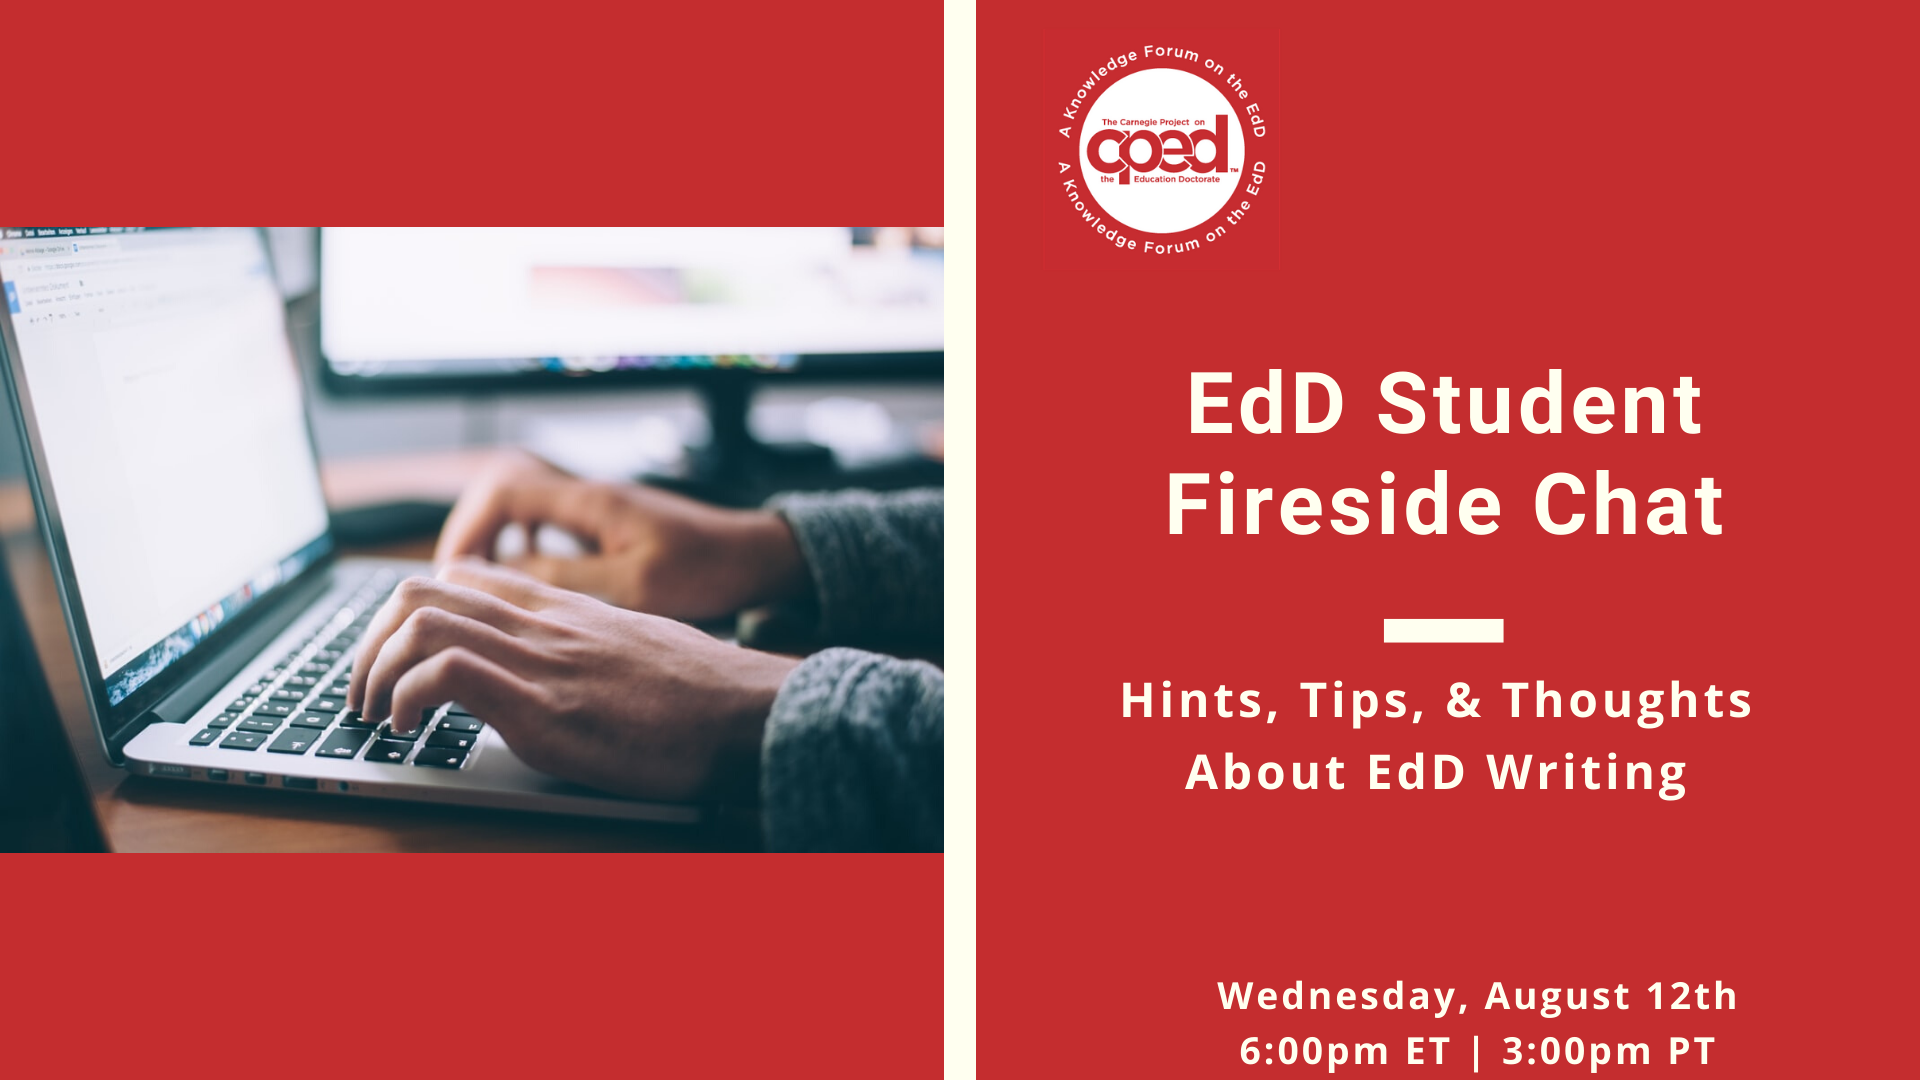 EdD Student Fireside Chat: Hints, Tips, and Thoughts About EdD Writing